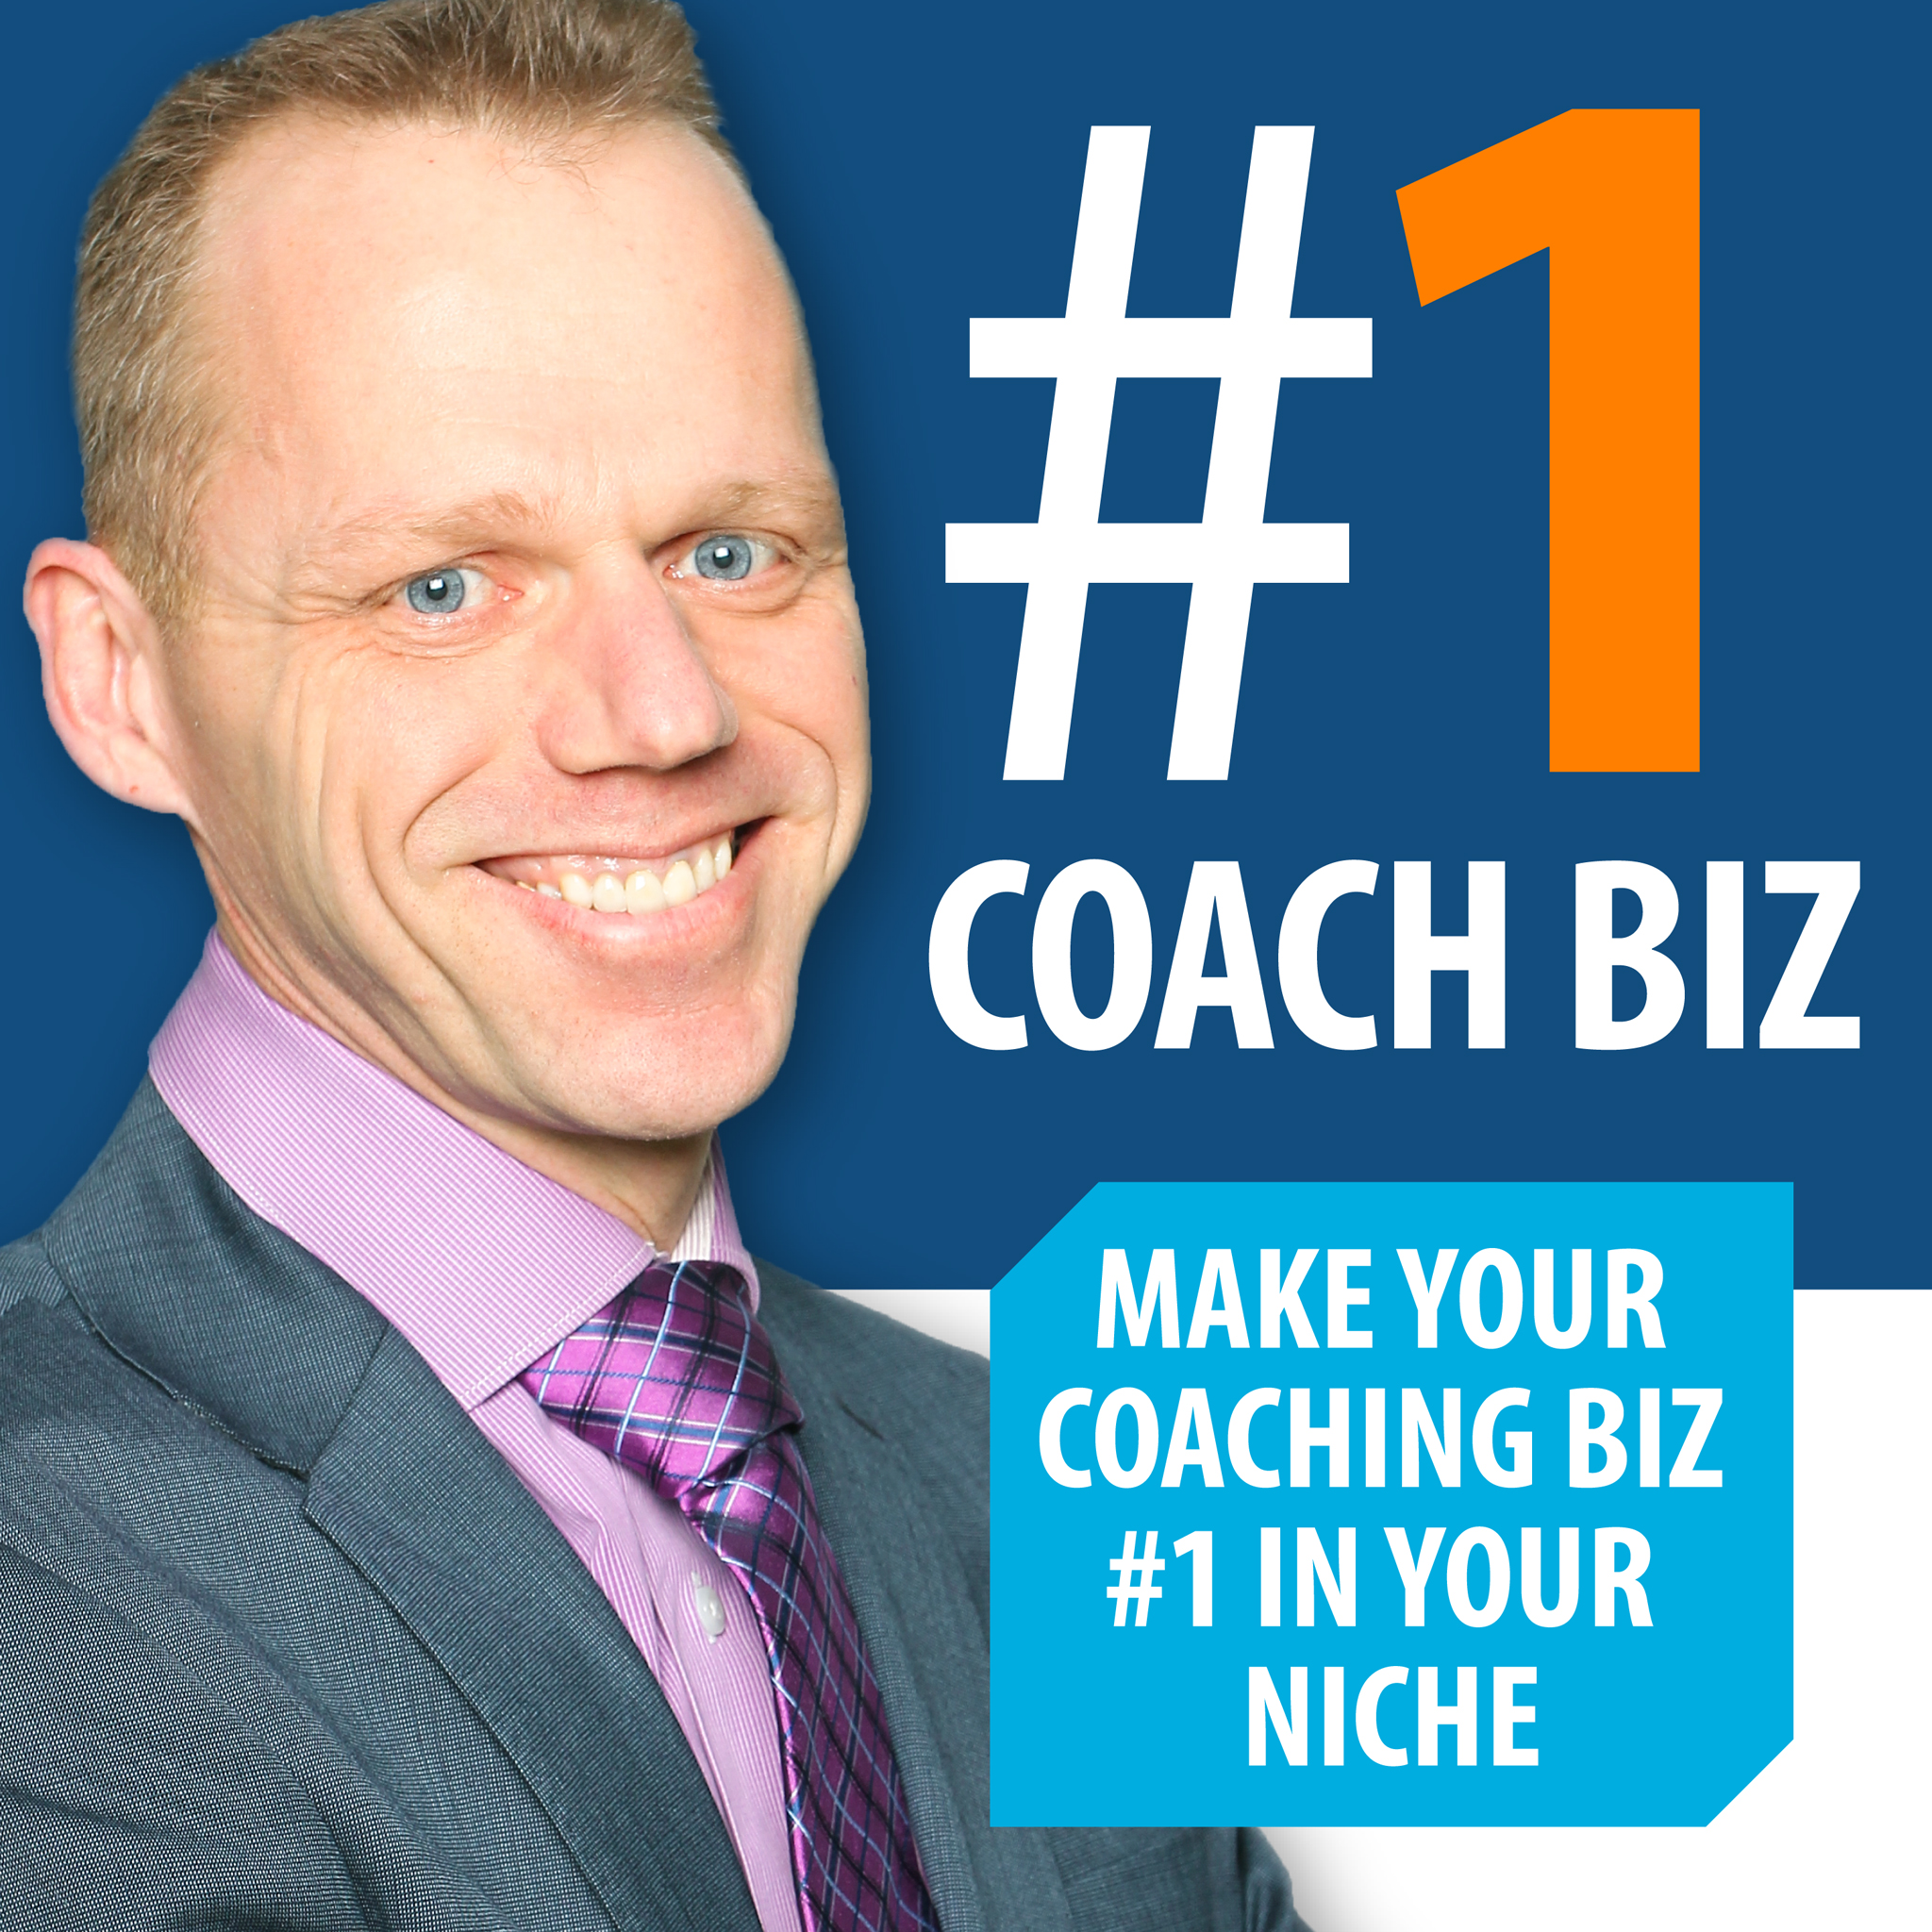 #1CoachBiz Podcast: interviews with successful entrepreneurs| tips to improve your business show art